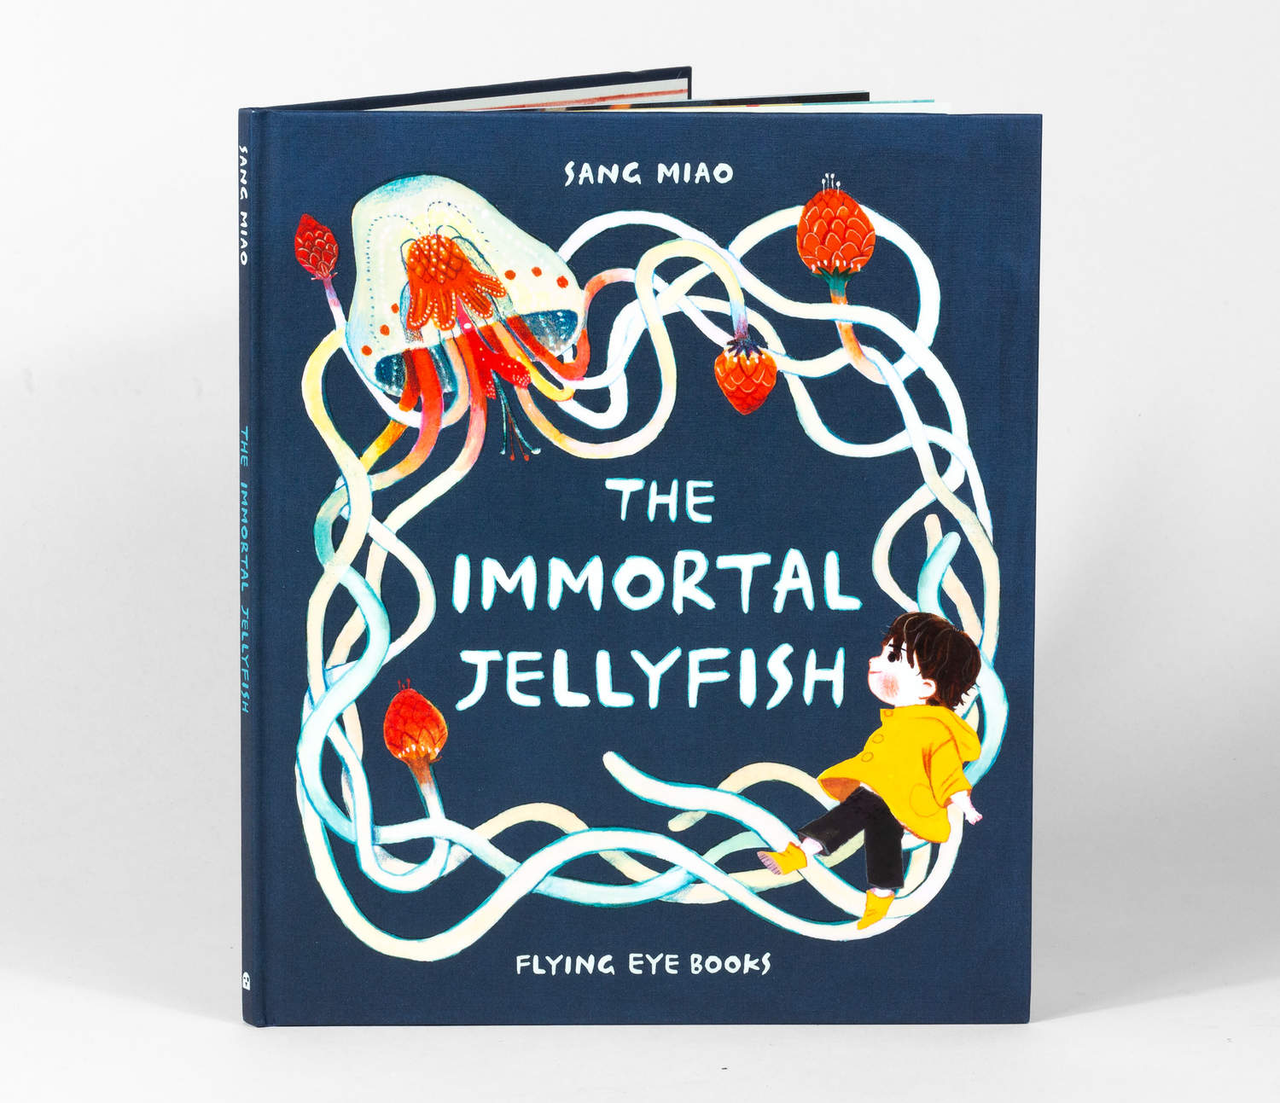 The Immortal Jellyfish - Children's Book